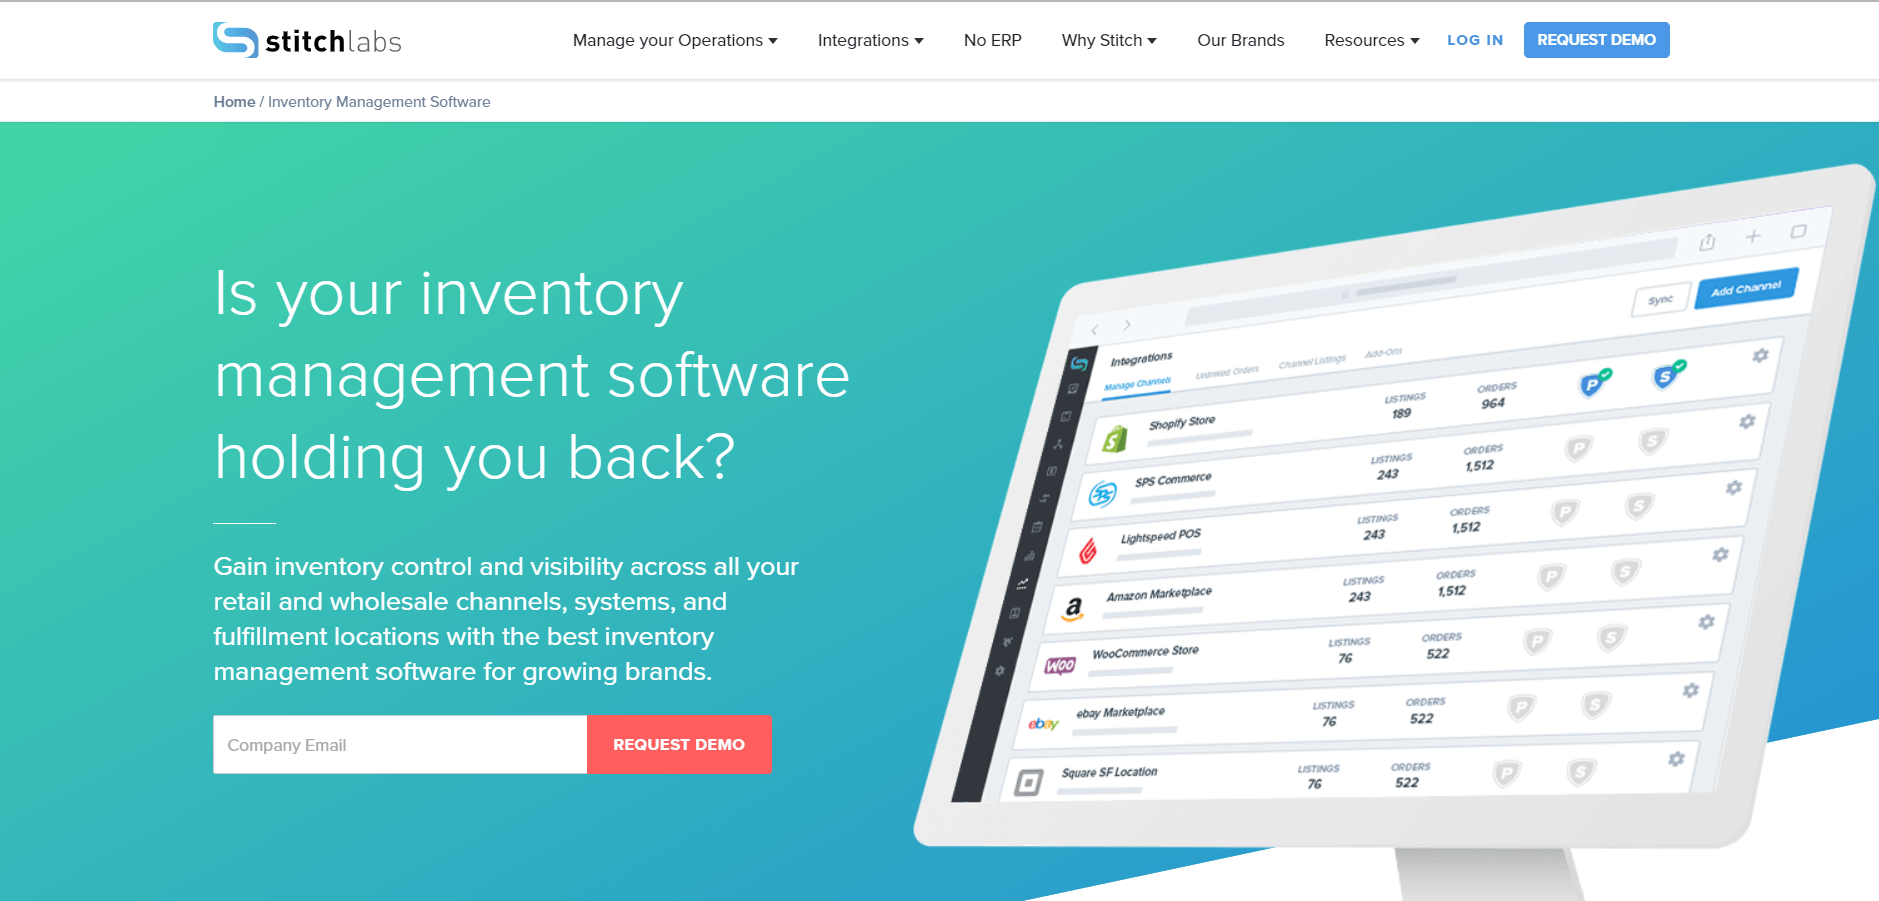 stitchlabs inventory management software